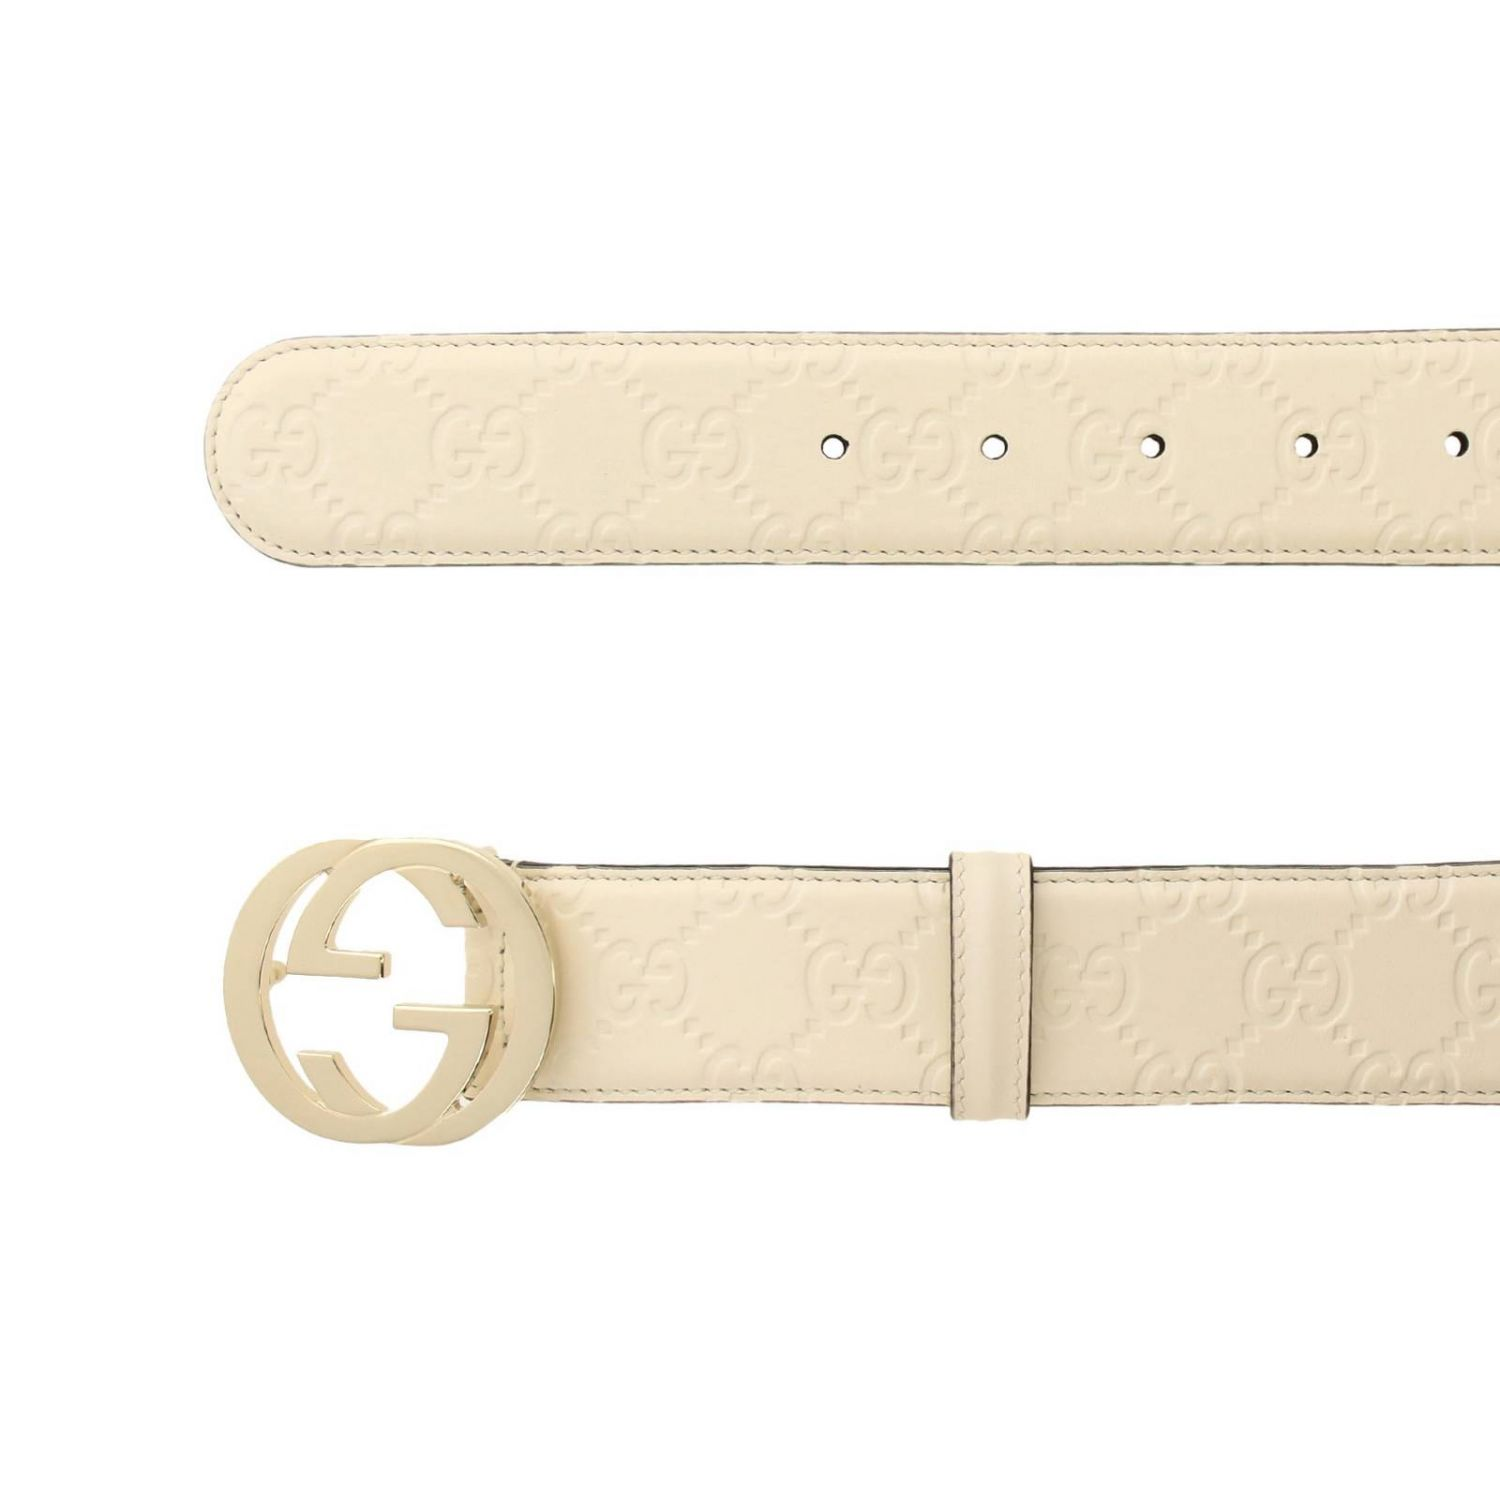 Cintura in pelle GG Gucci embossed con fibbia interlocking bianco 2